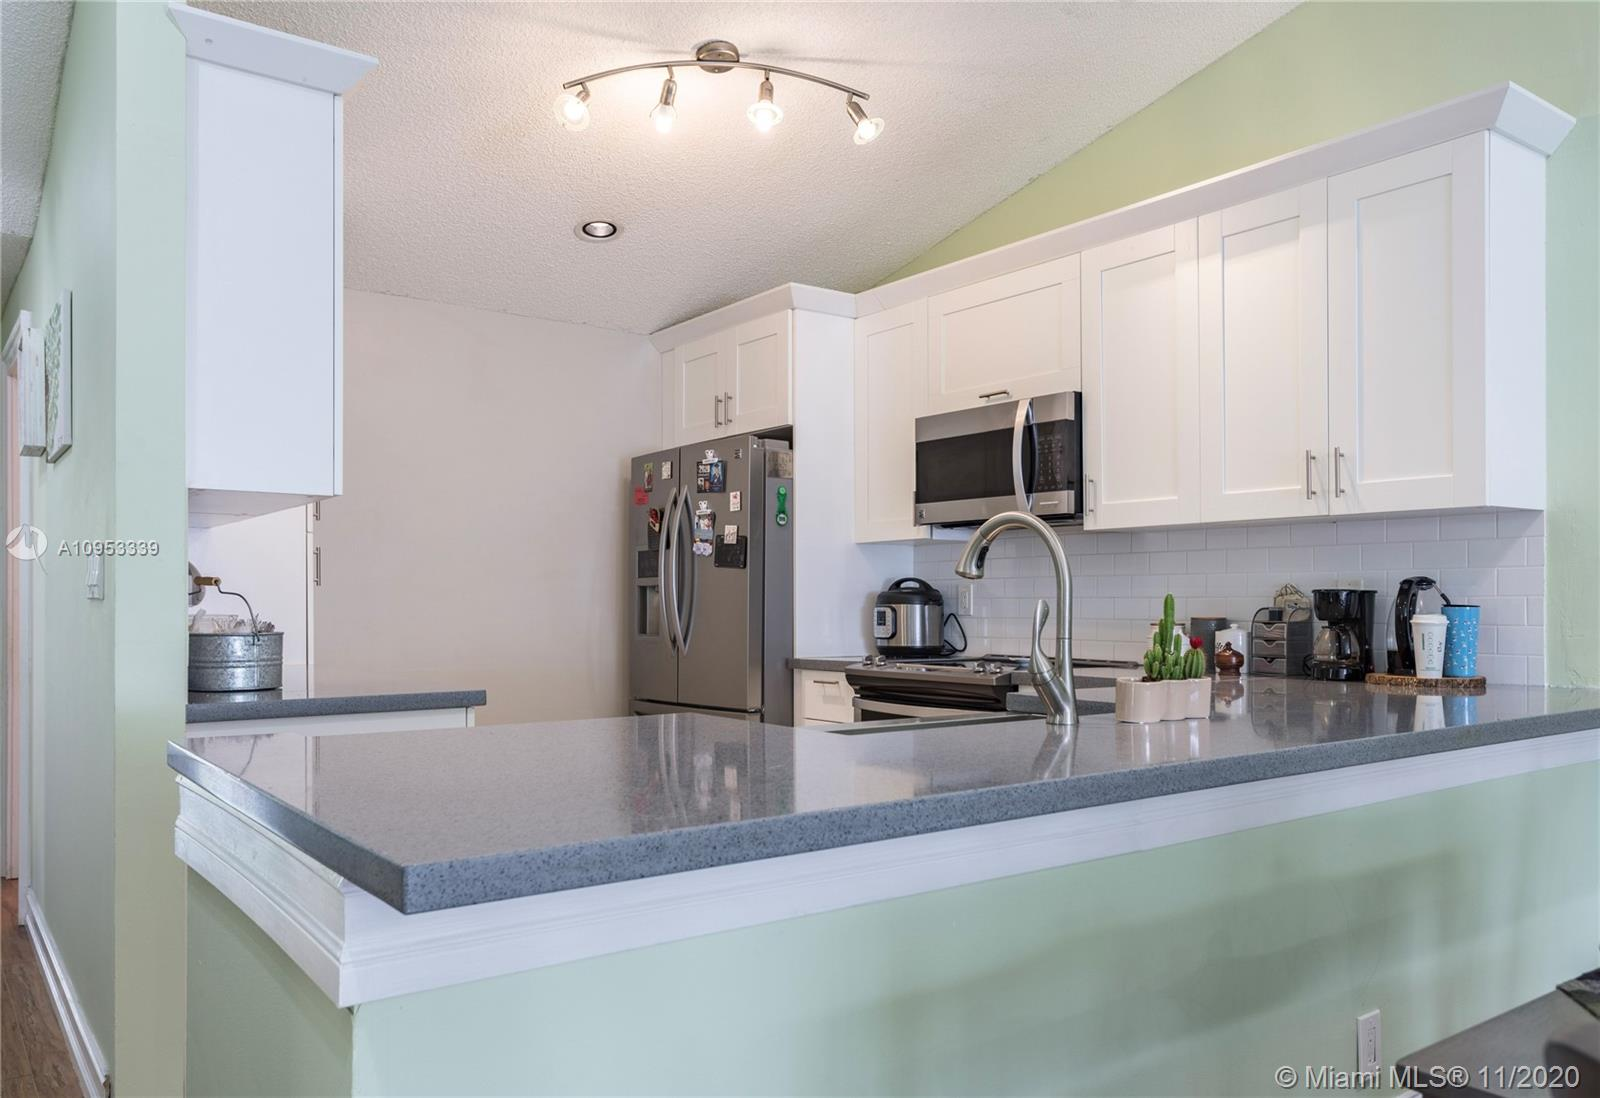 Upgraded Bright corner Villa with Garage. FHA approved. Roof maintained by HOA. NO RENTALS allows.  Fully renovated kitchen and bathrooms. Quartz countertop with modern wood cabinets. Lots of natural light. Comfortable size bedrooms. Community pool, close to shopping and Tamarac Sports Complex.